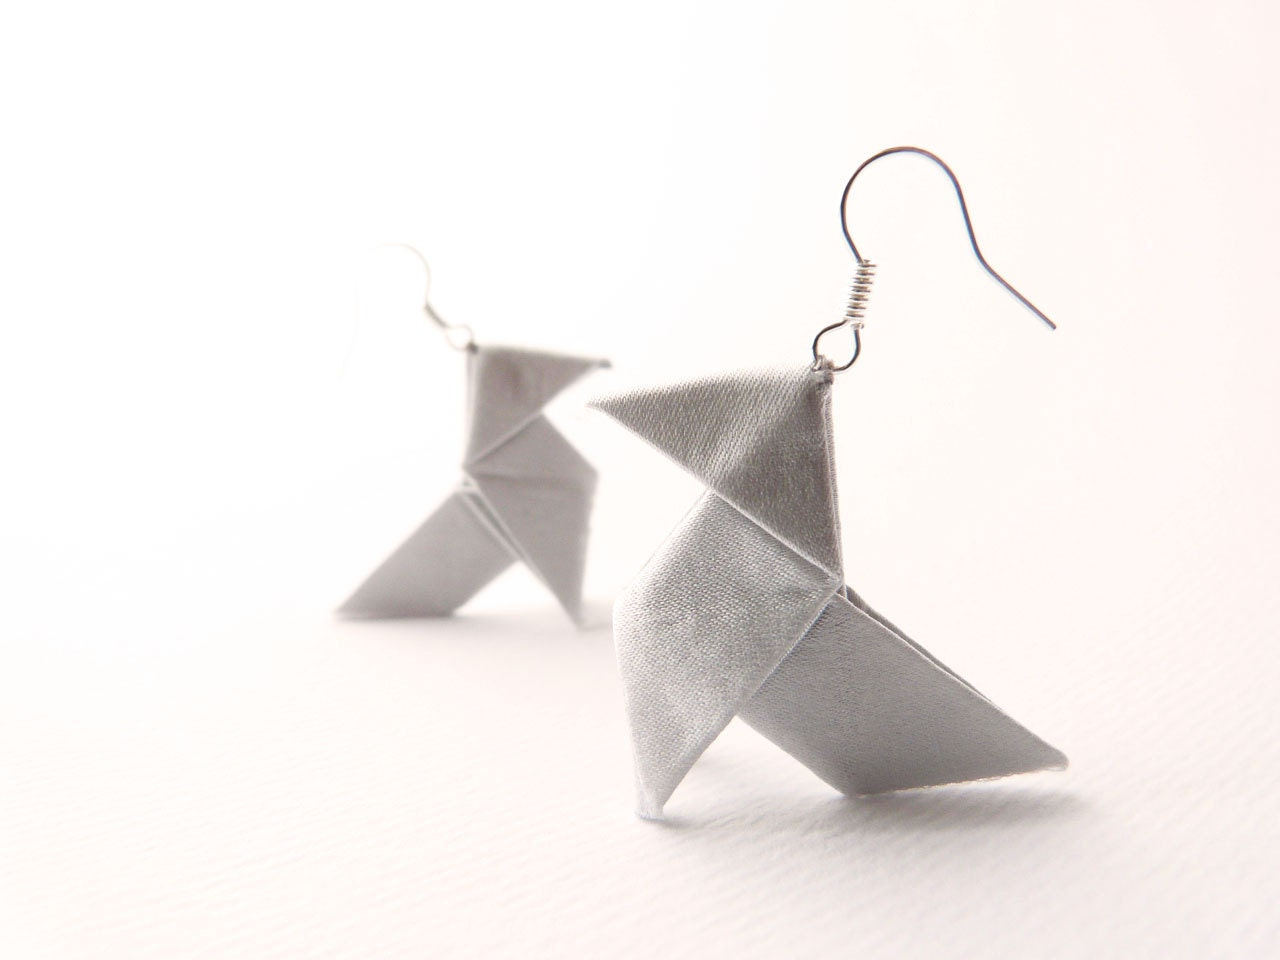 Origami earrings Light grey silk OOAK by Jye, Hand-made in France - Joliejye